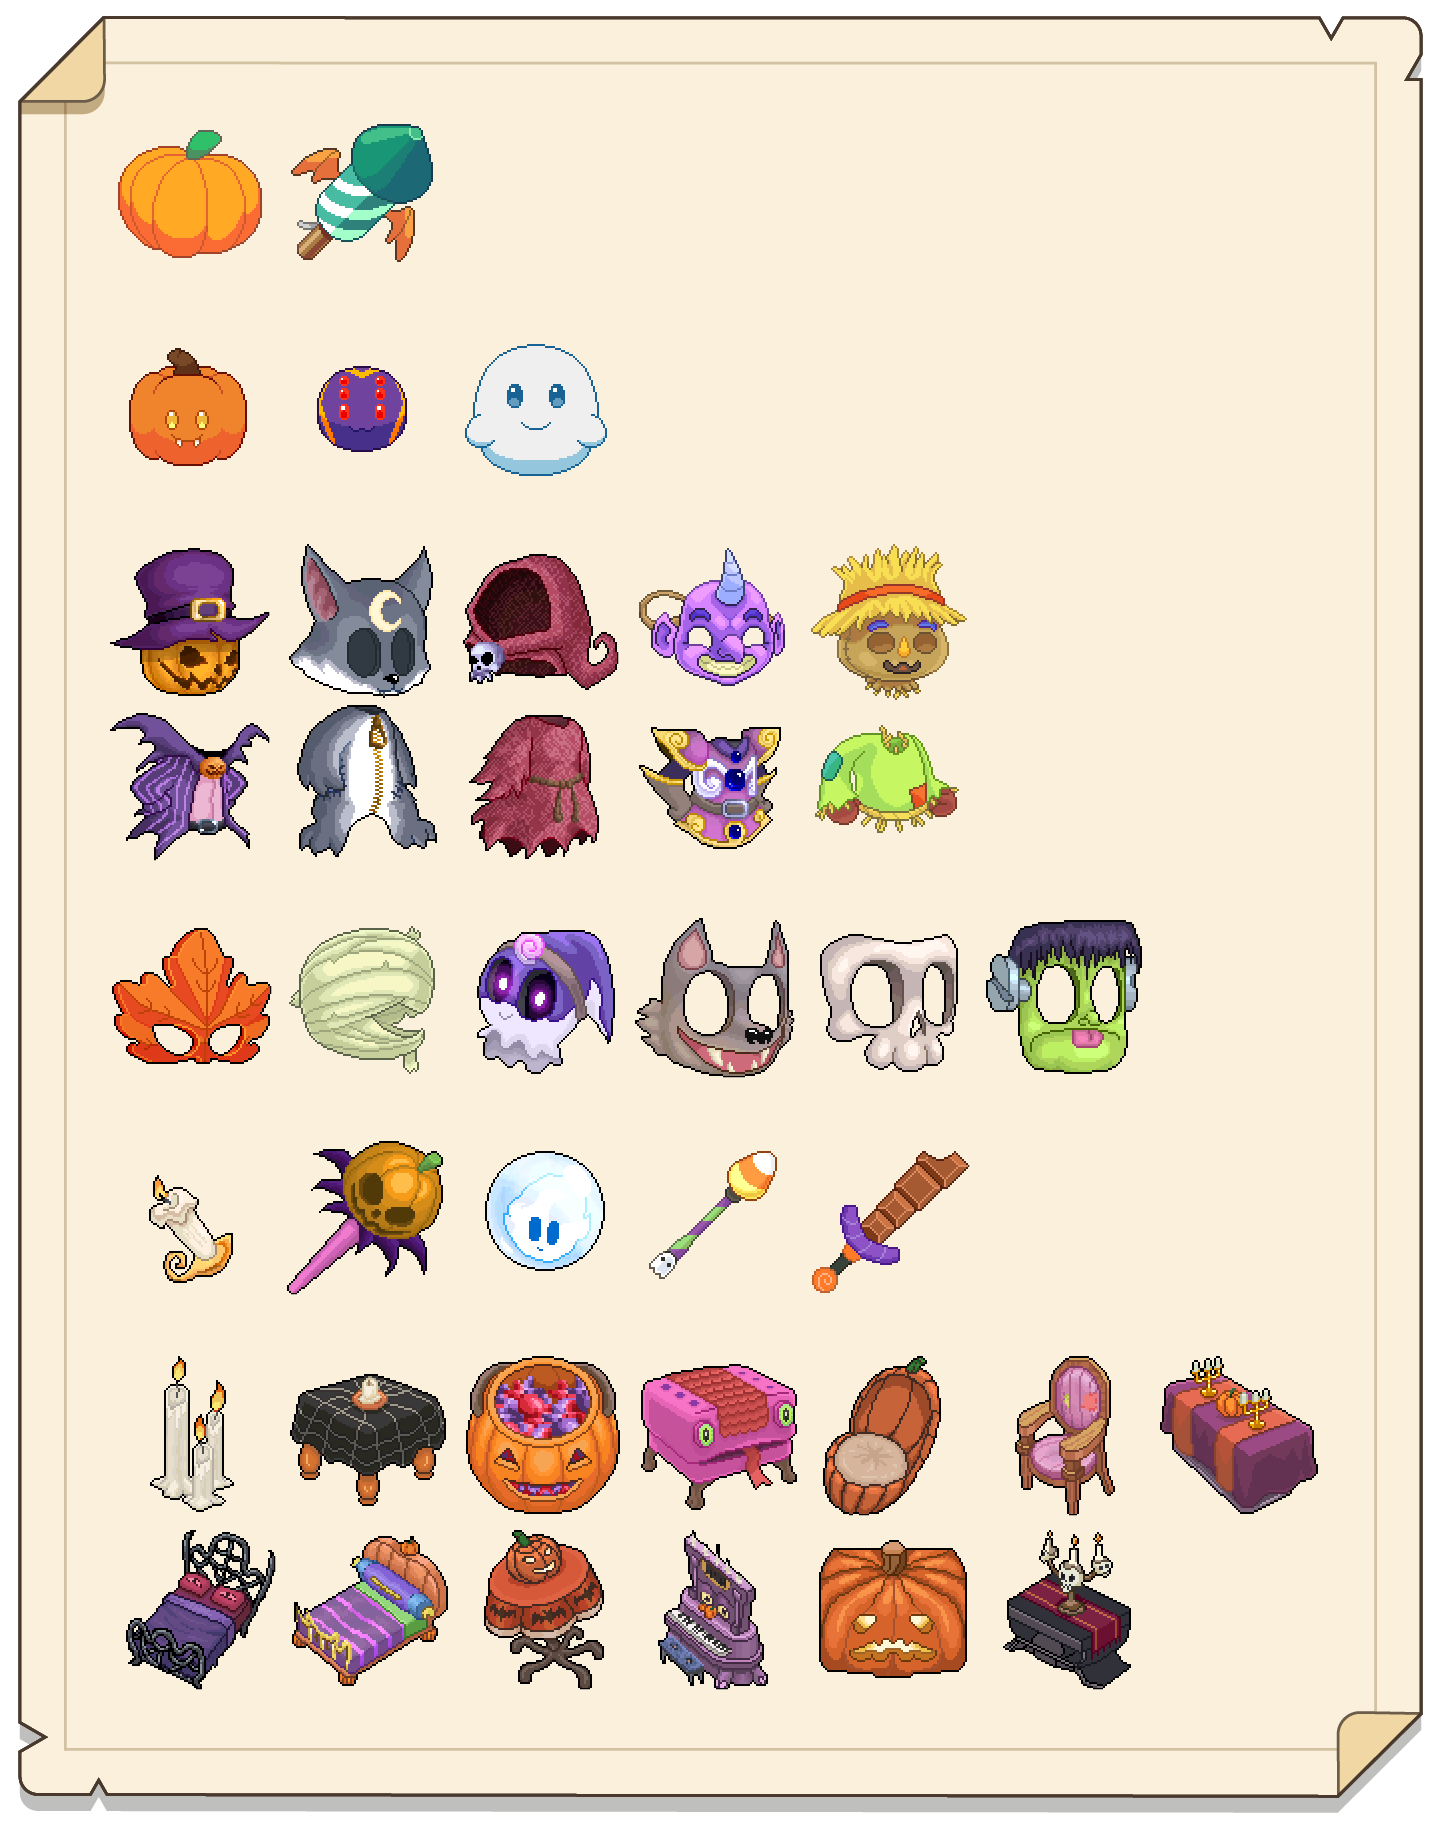 Picture of all the different items available for students during Prodigy's Pumpkinfest celebration